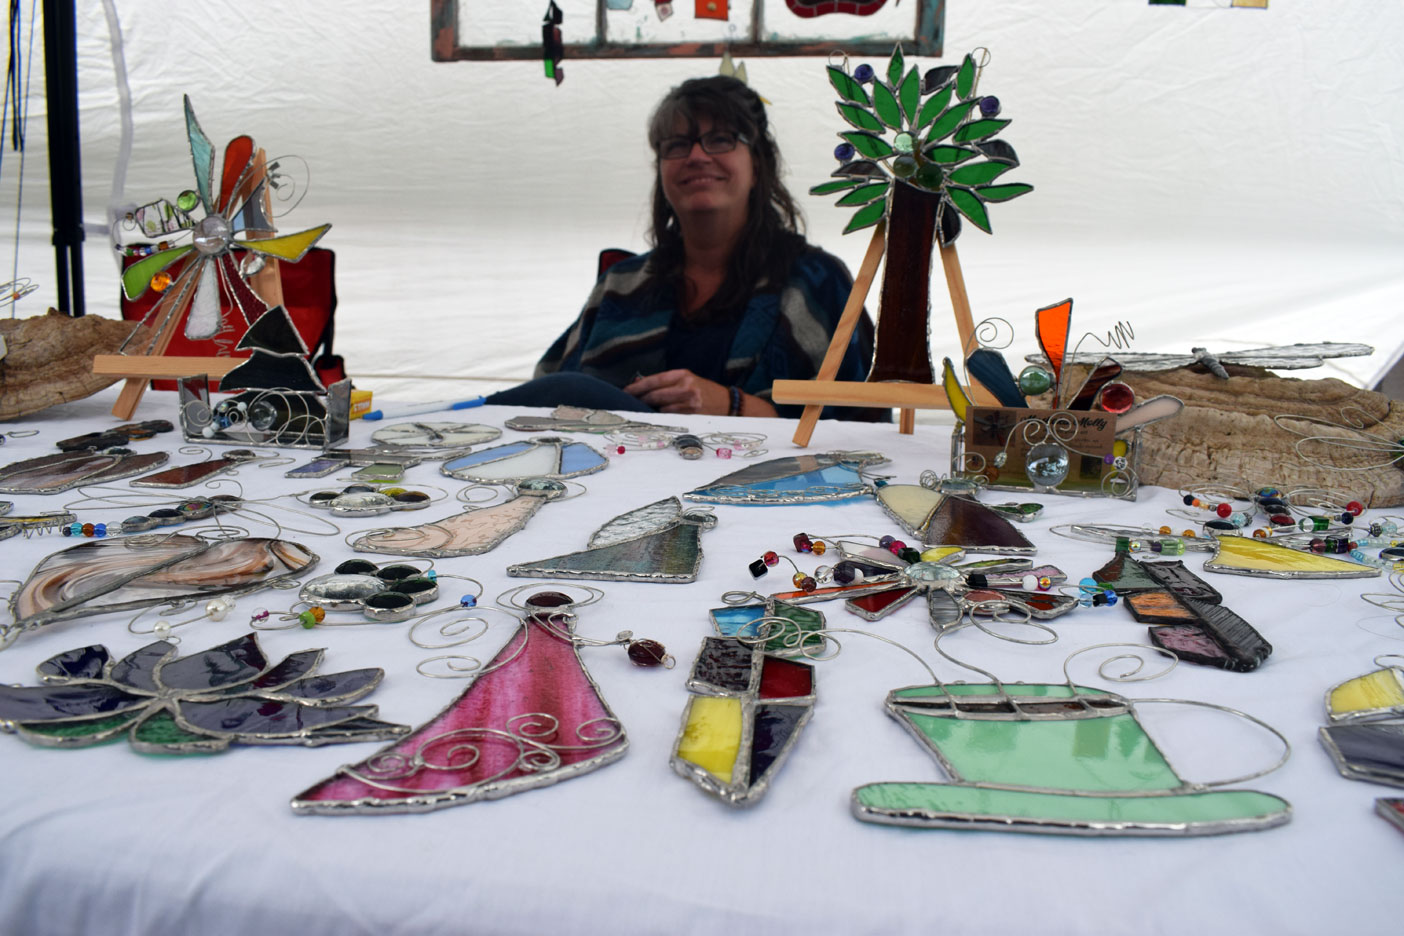 Sheri puts a lot of heart and soul into her stained-glass pieces, which were truly eye-catching.